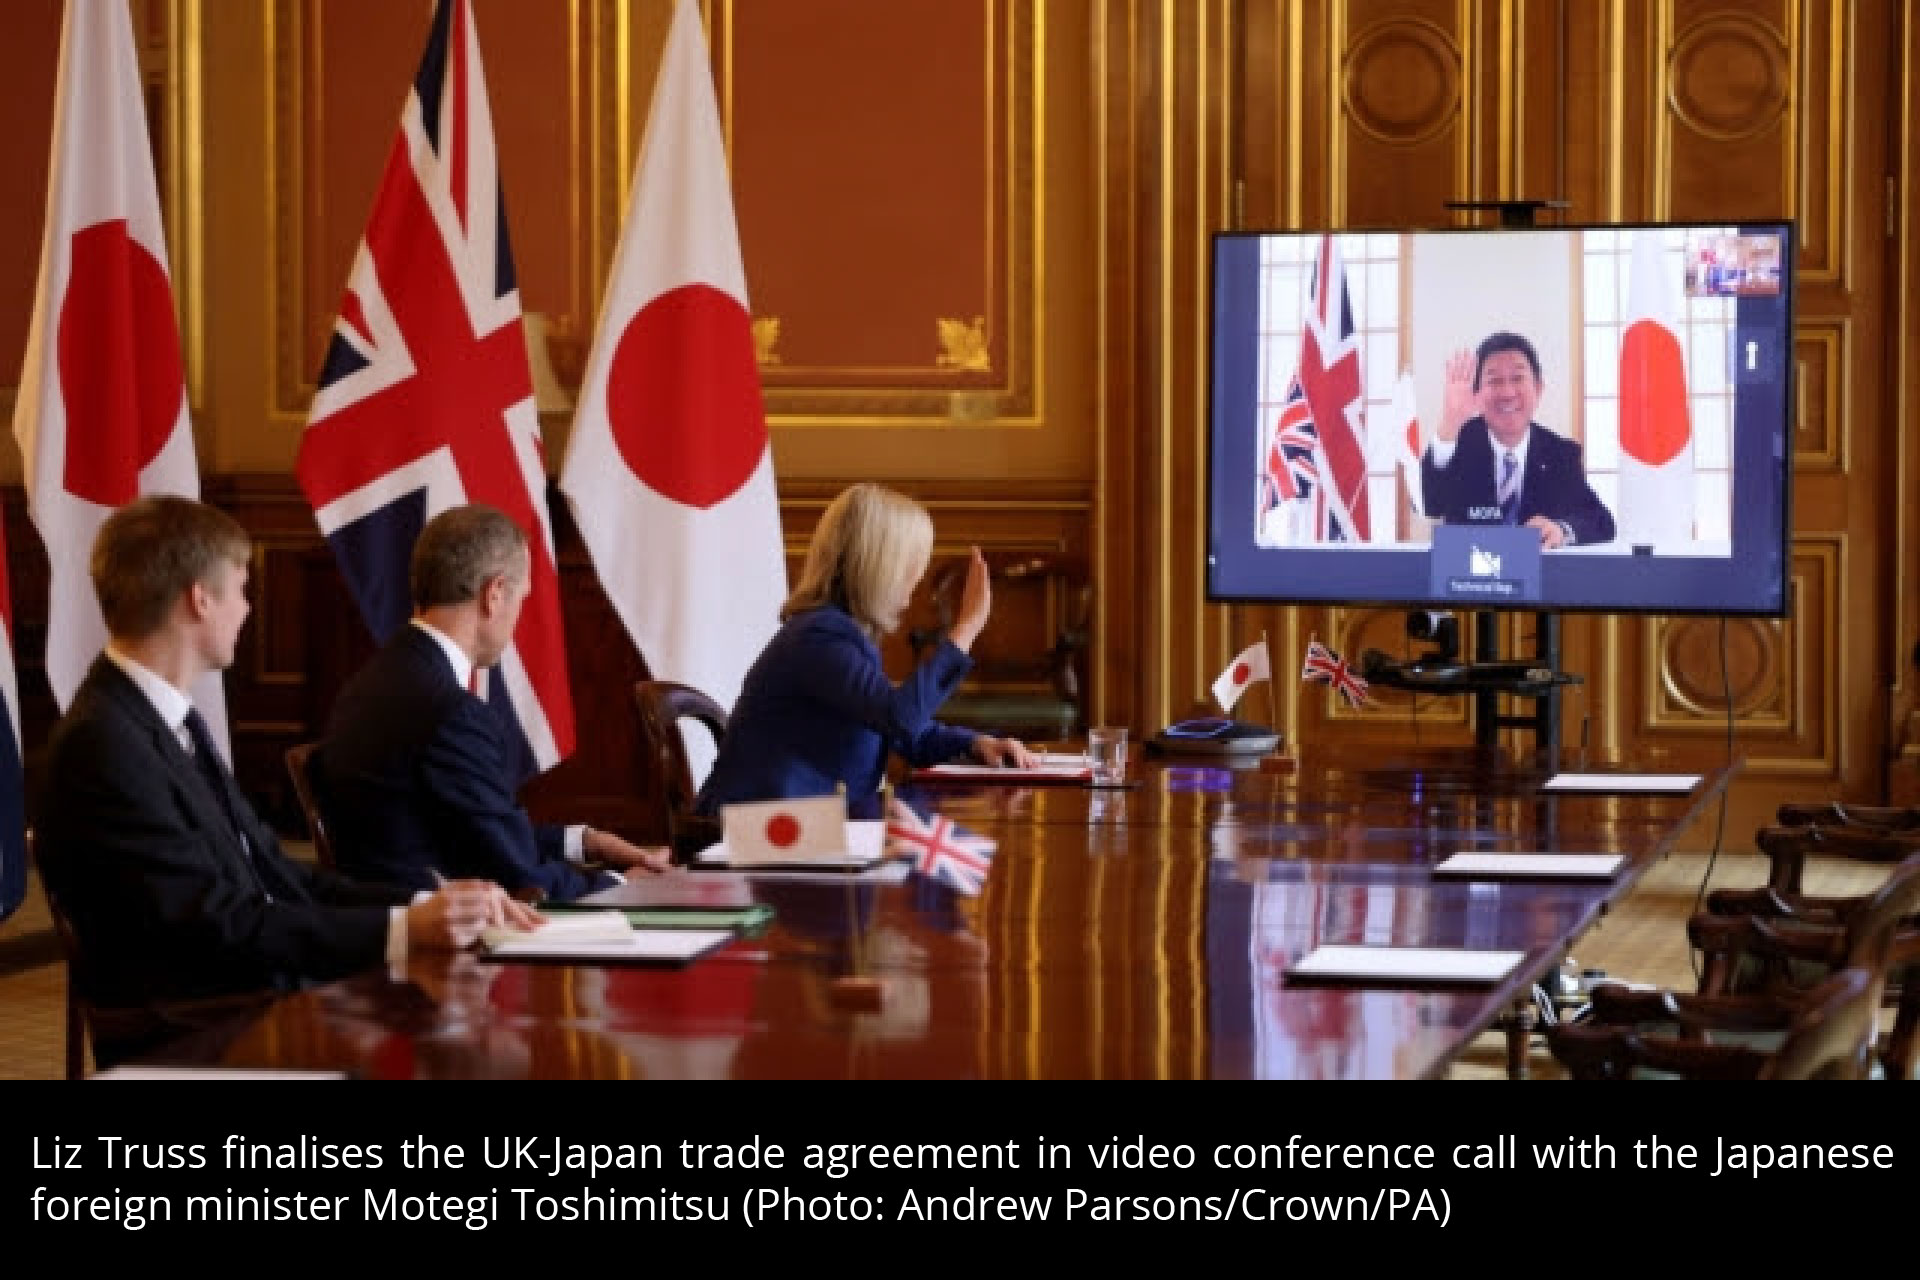 Britain's Historic Post-Brexit Trade Pact With Japan Offers Companies Incentives To Grow Their Market In Asia